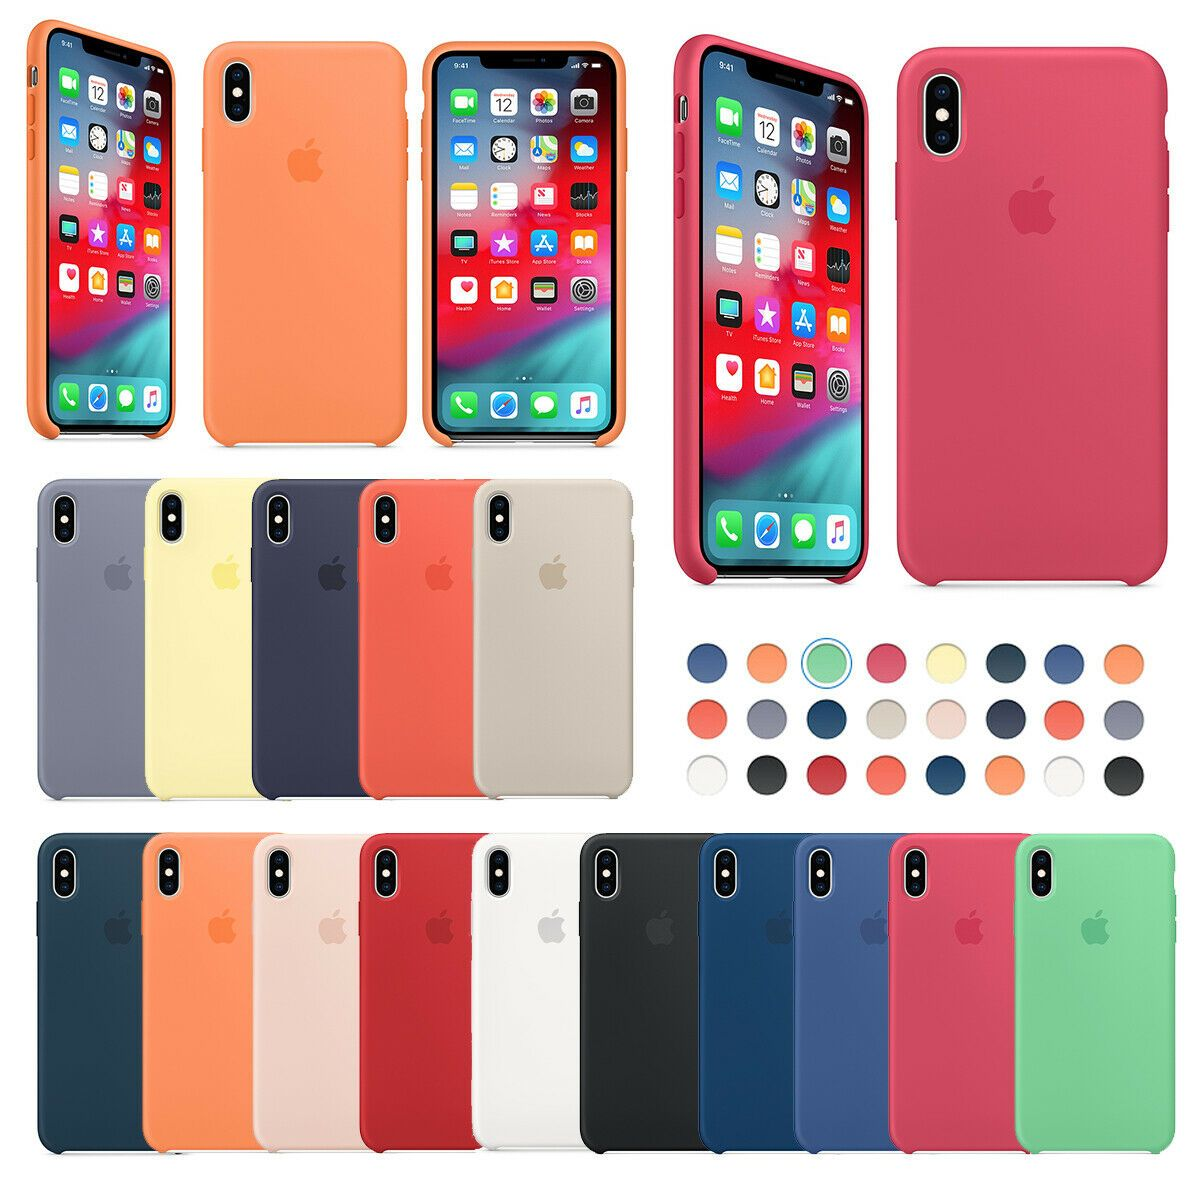 Iphone X case Iphone XS case Silicone Cover iphone 7plus iphone 8